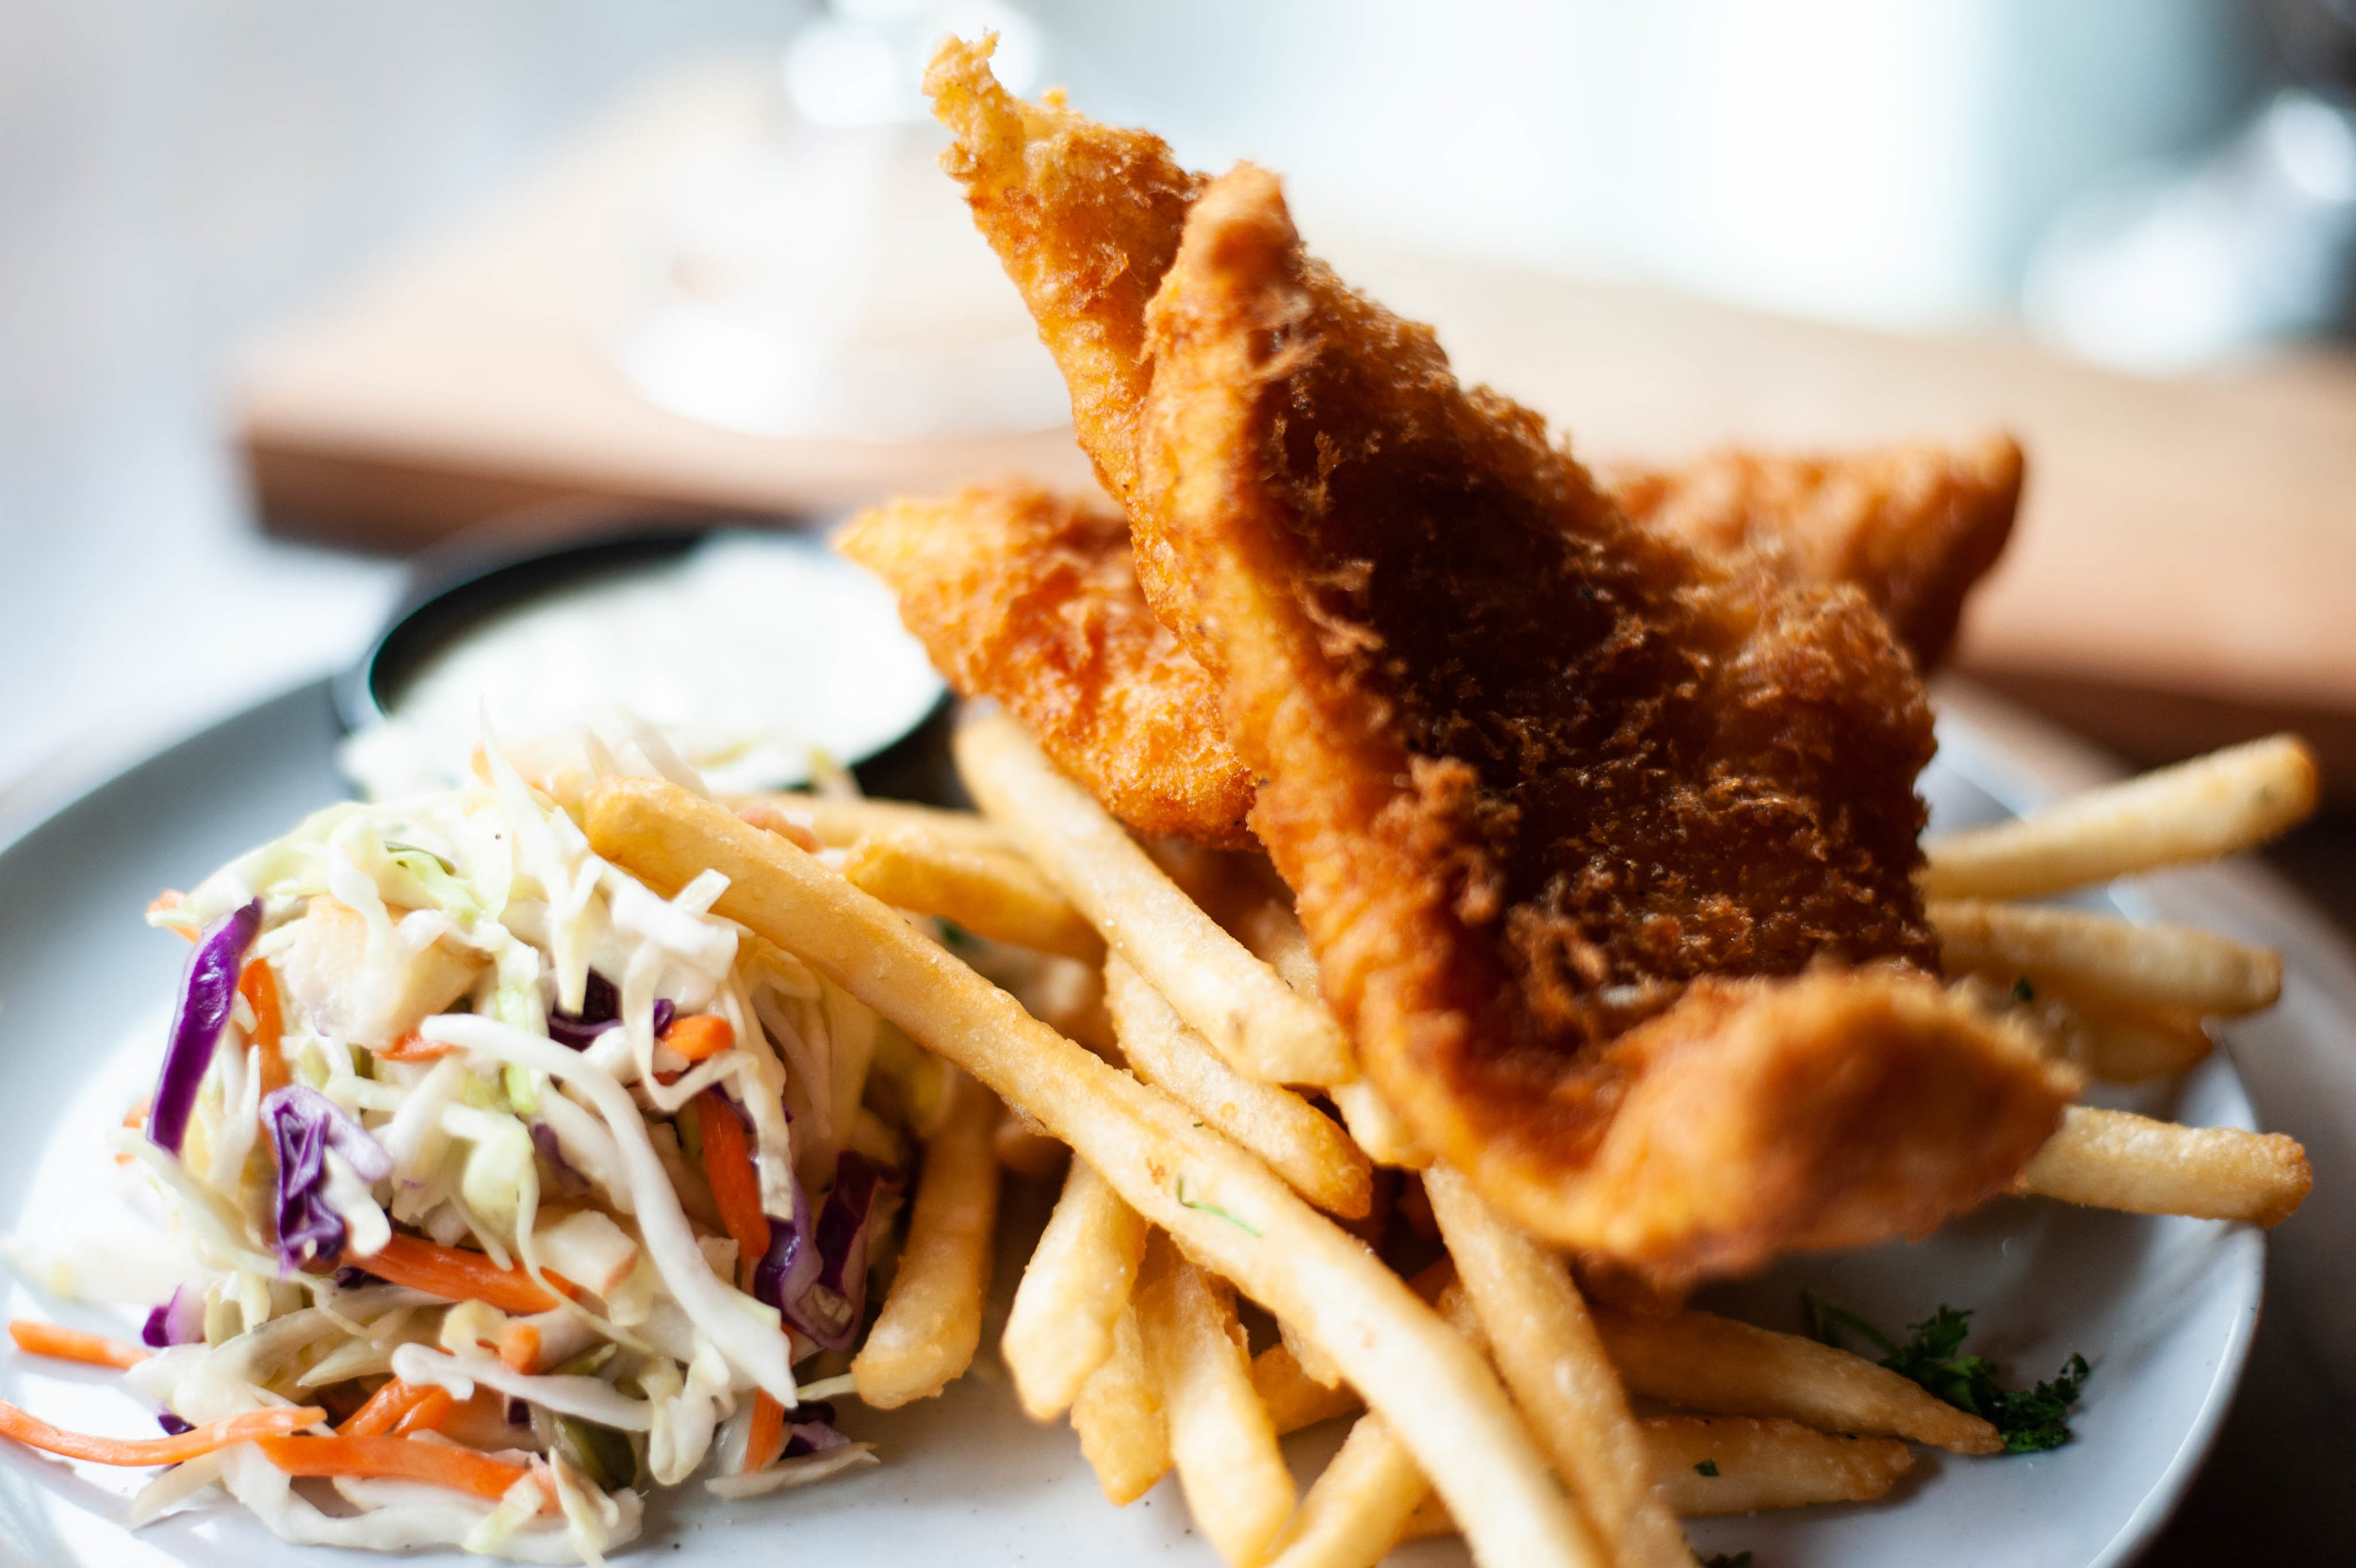 Fin's Fish n' Chips